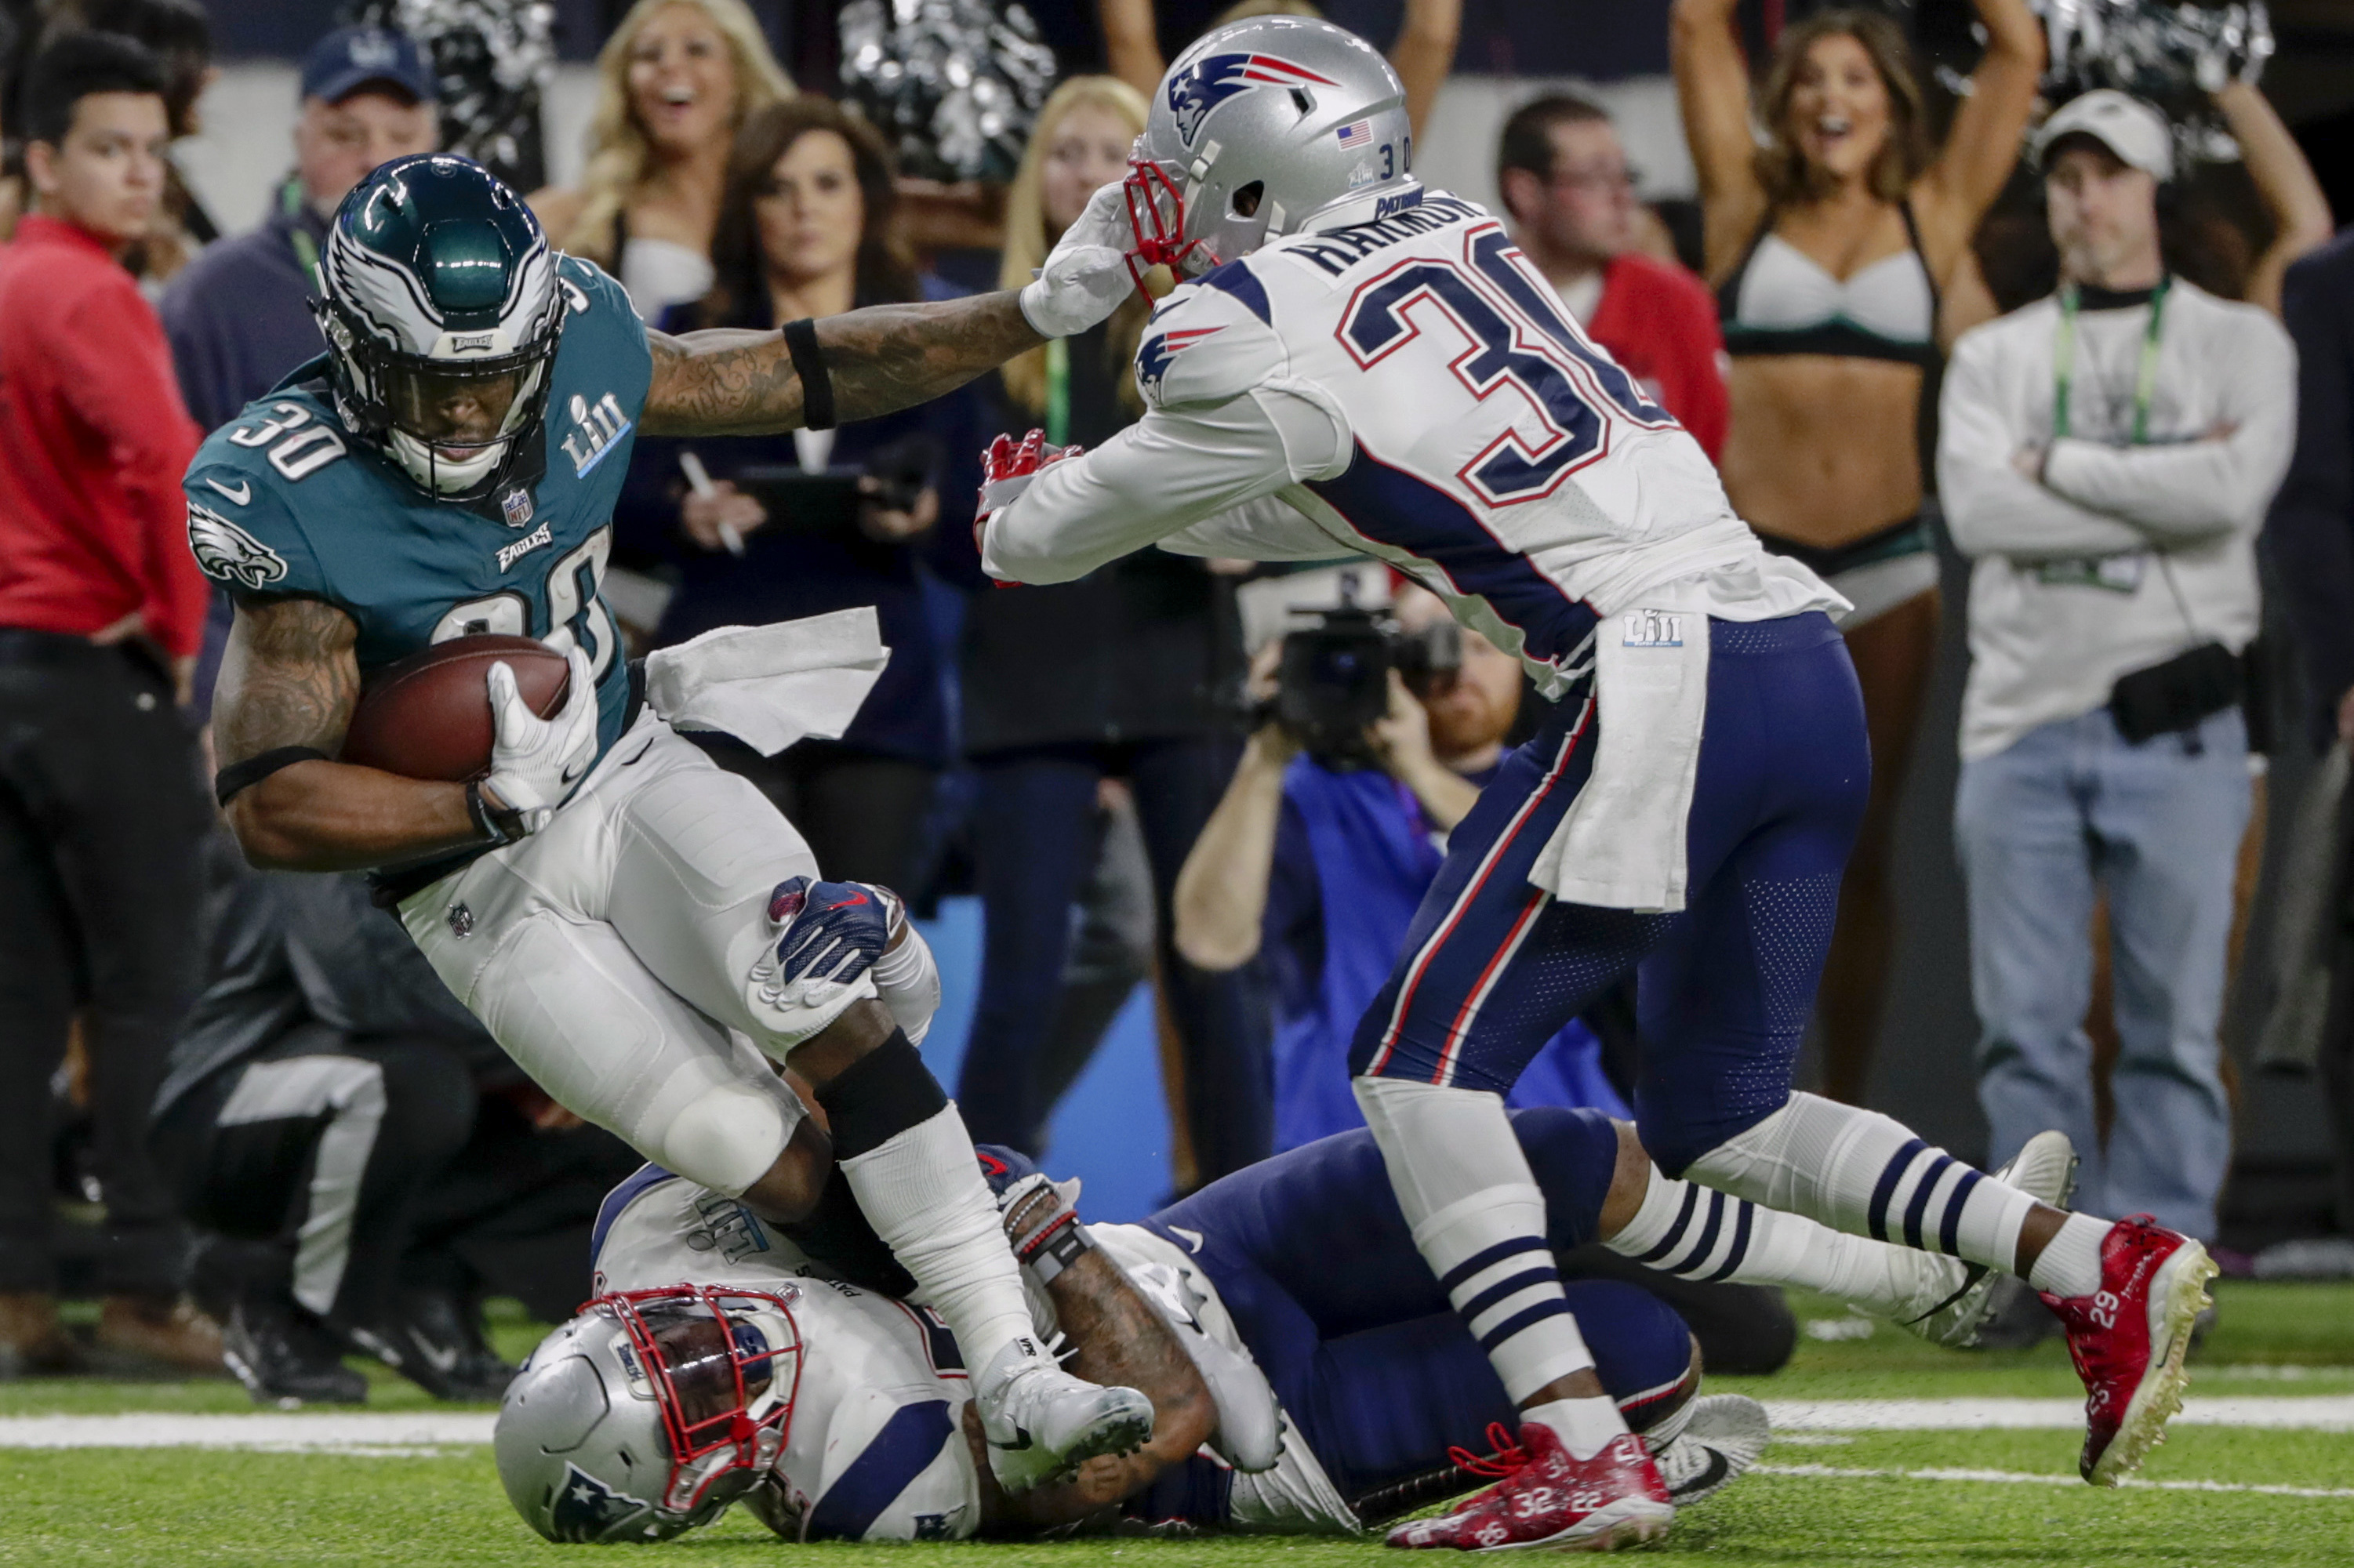 "<div class=""meta image-caption""><div class=""origin-logo origin-image ap""><span>AP</span></div><span class=""caption-text"">Philadelphia Eagles running back Corey Clement (30), is tackled by New England Patriots outside linebacker Elandon Roberts (52), bottom, and strong safety Duron Harmon (30). (AP Photo/Chris O'Meara)</span></div>"